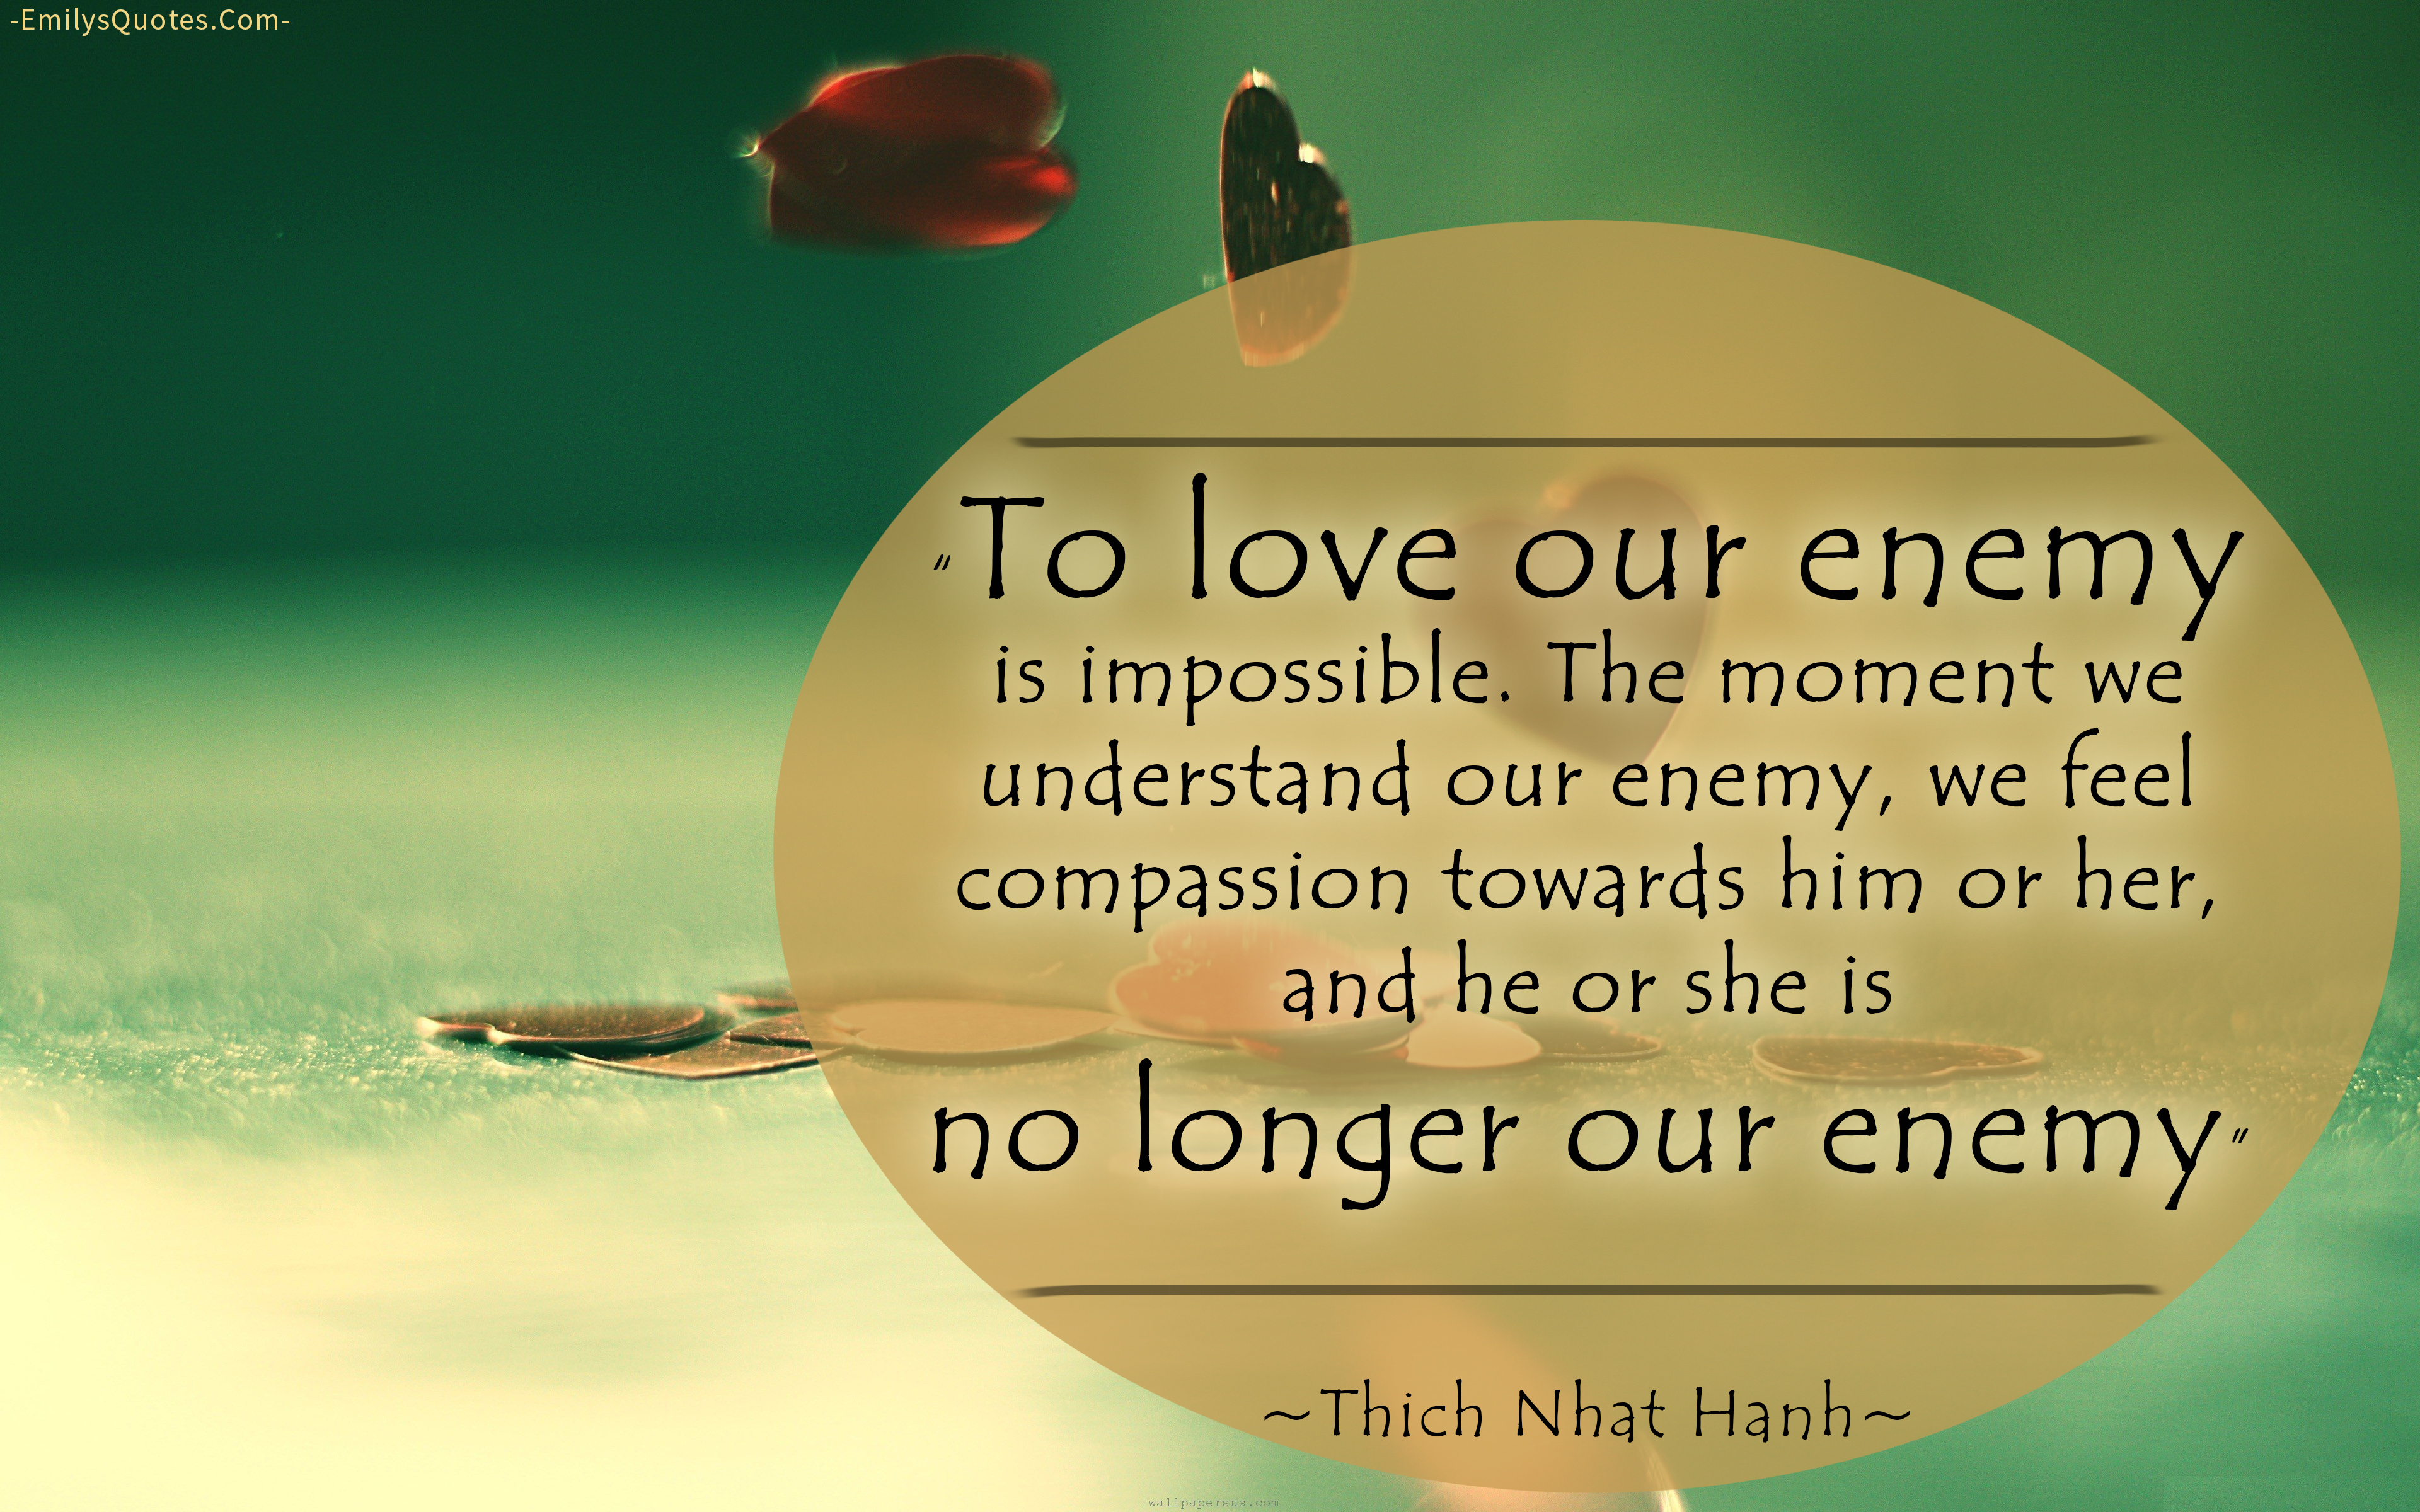 EmilysQuotes.Com - Thich Nhat Hanh, love, amazing, great, wisdom, understanding, enemy, feel, compassion